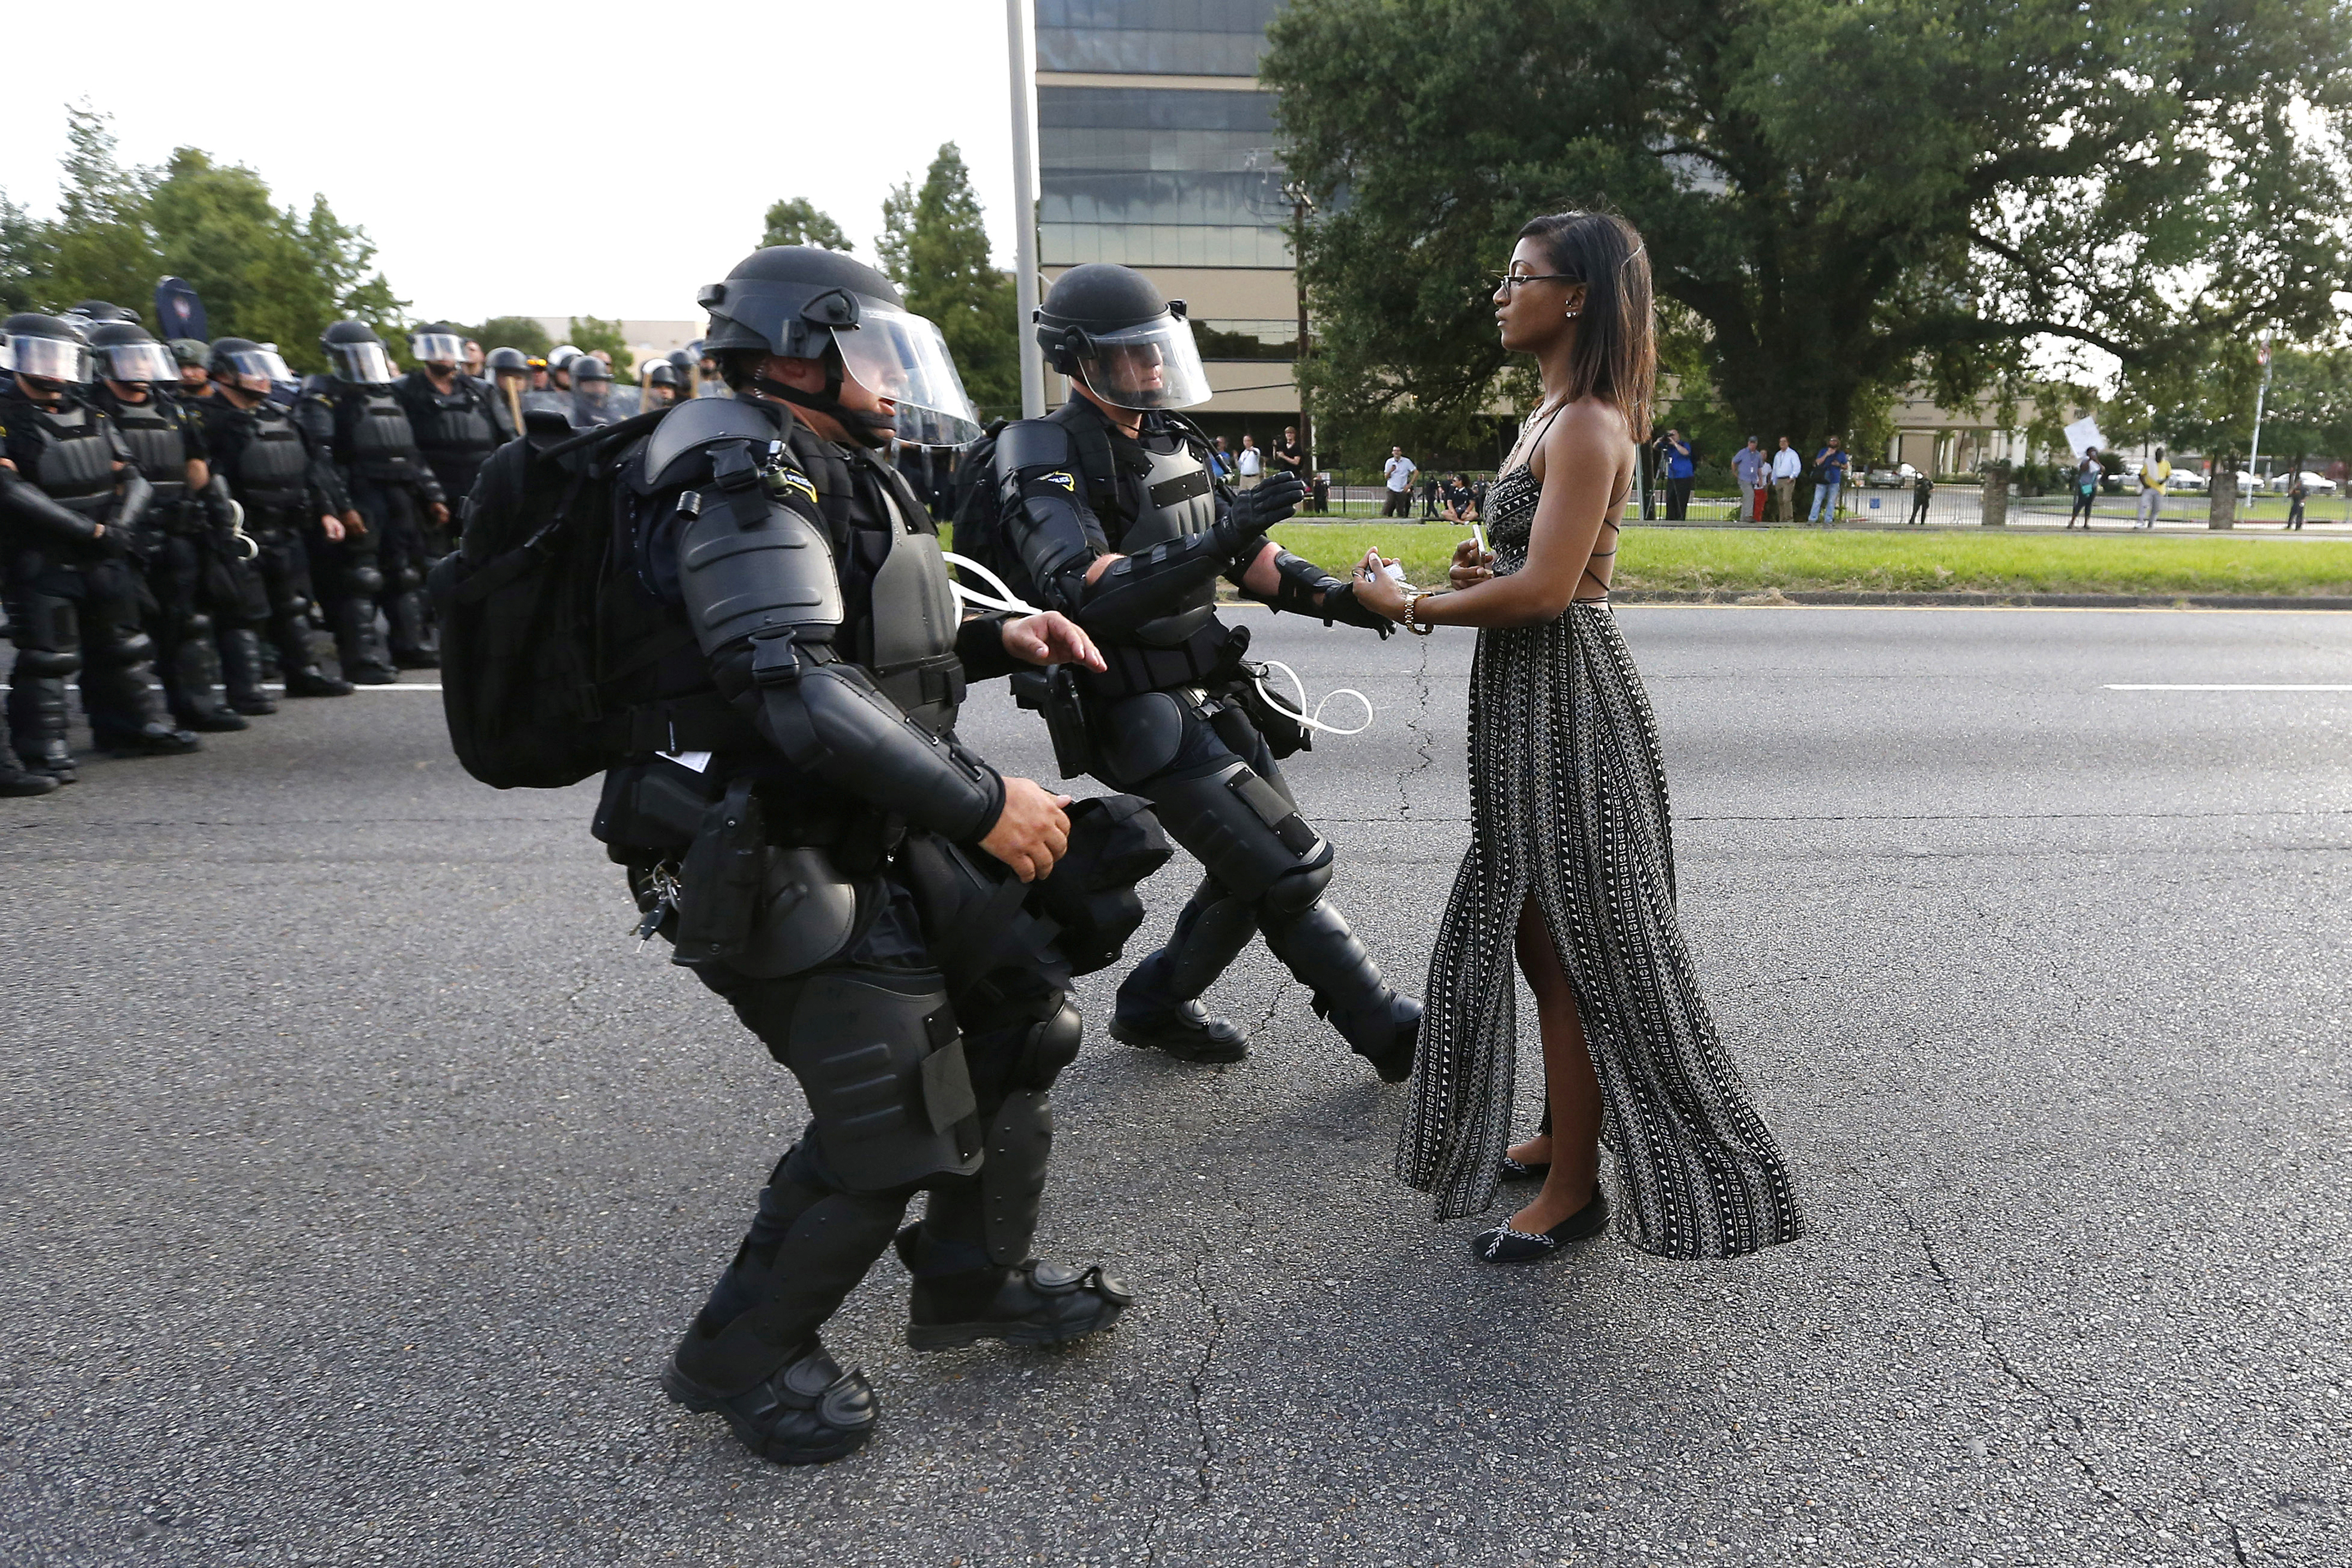 Lone activist Leshia Evans stands her ground while offering her hands for arrest as she is charged by riot police during a protest against police brutality outside the Baton Rouge Police Department in Louisiana, U.S.A., July 9 2016. Picture taken  9 July 2016.